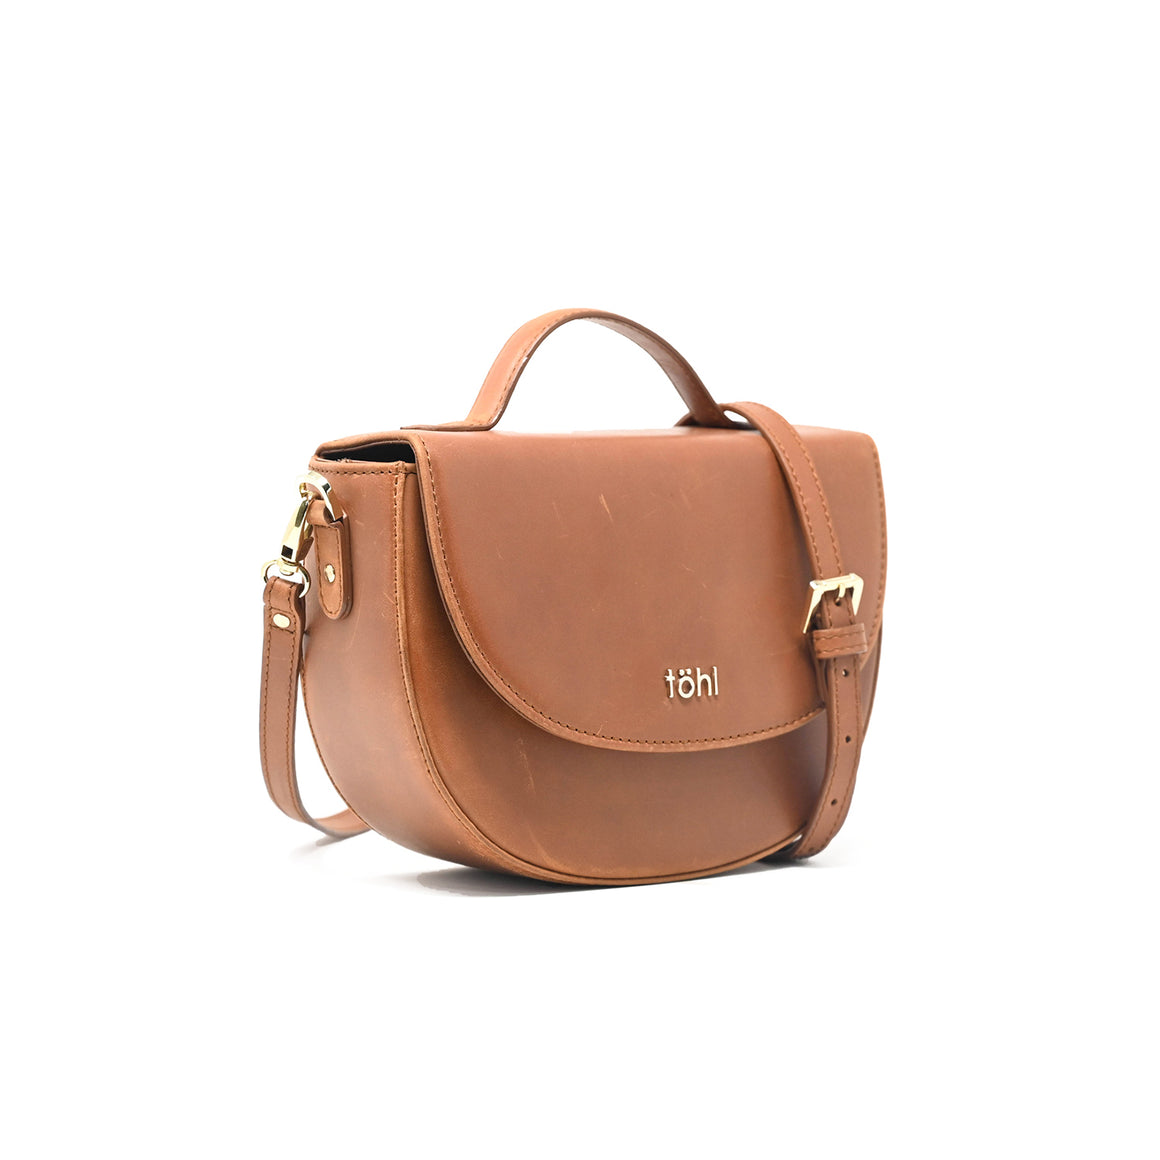 SG0036 - TOHL SWINTON WOMEN'S CROSS-BODY BAG - TAN